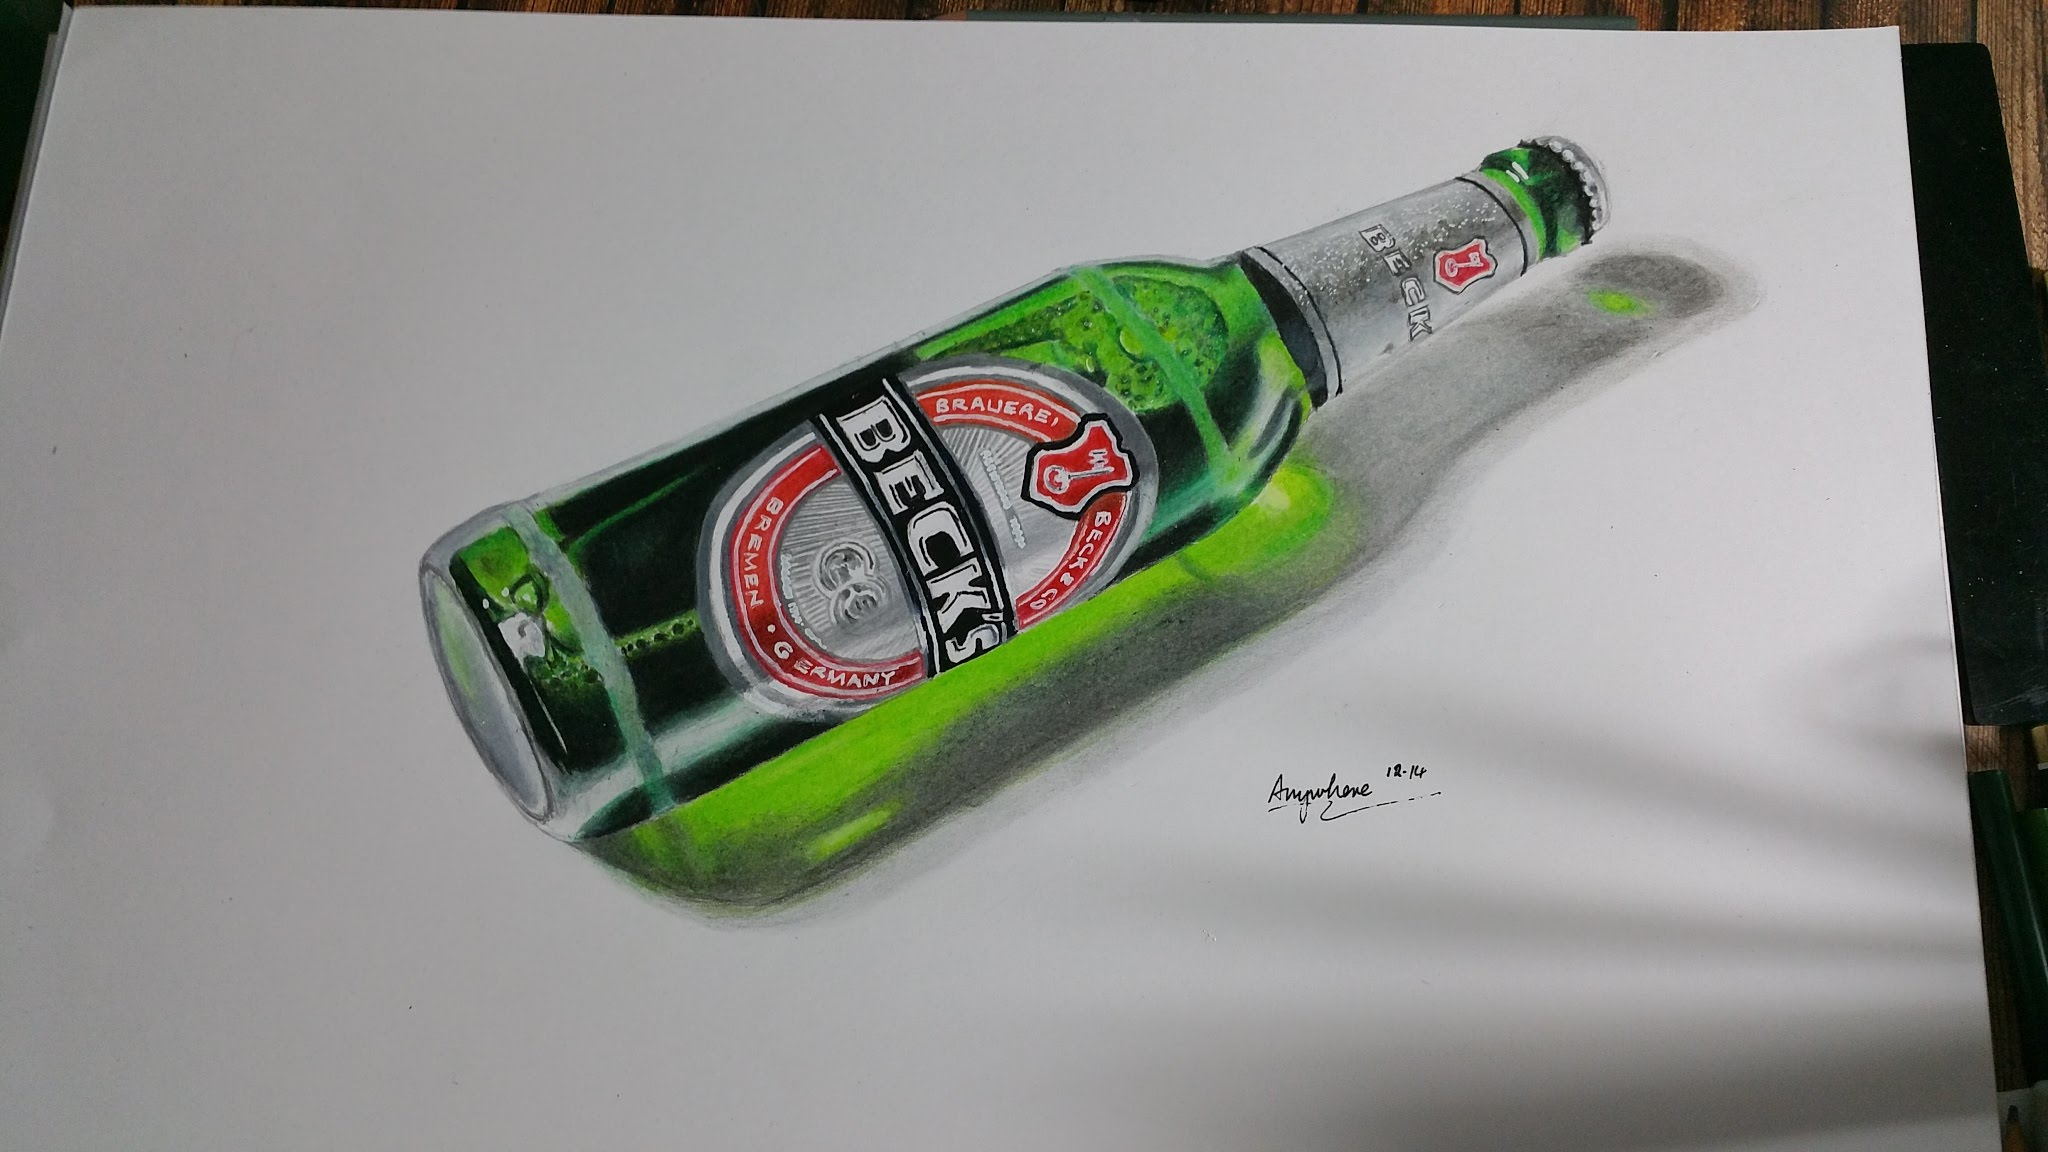 2048x1152 Drawing A Bottle Of Beck's Beer